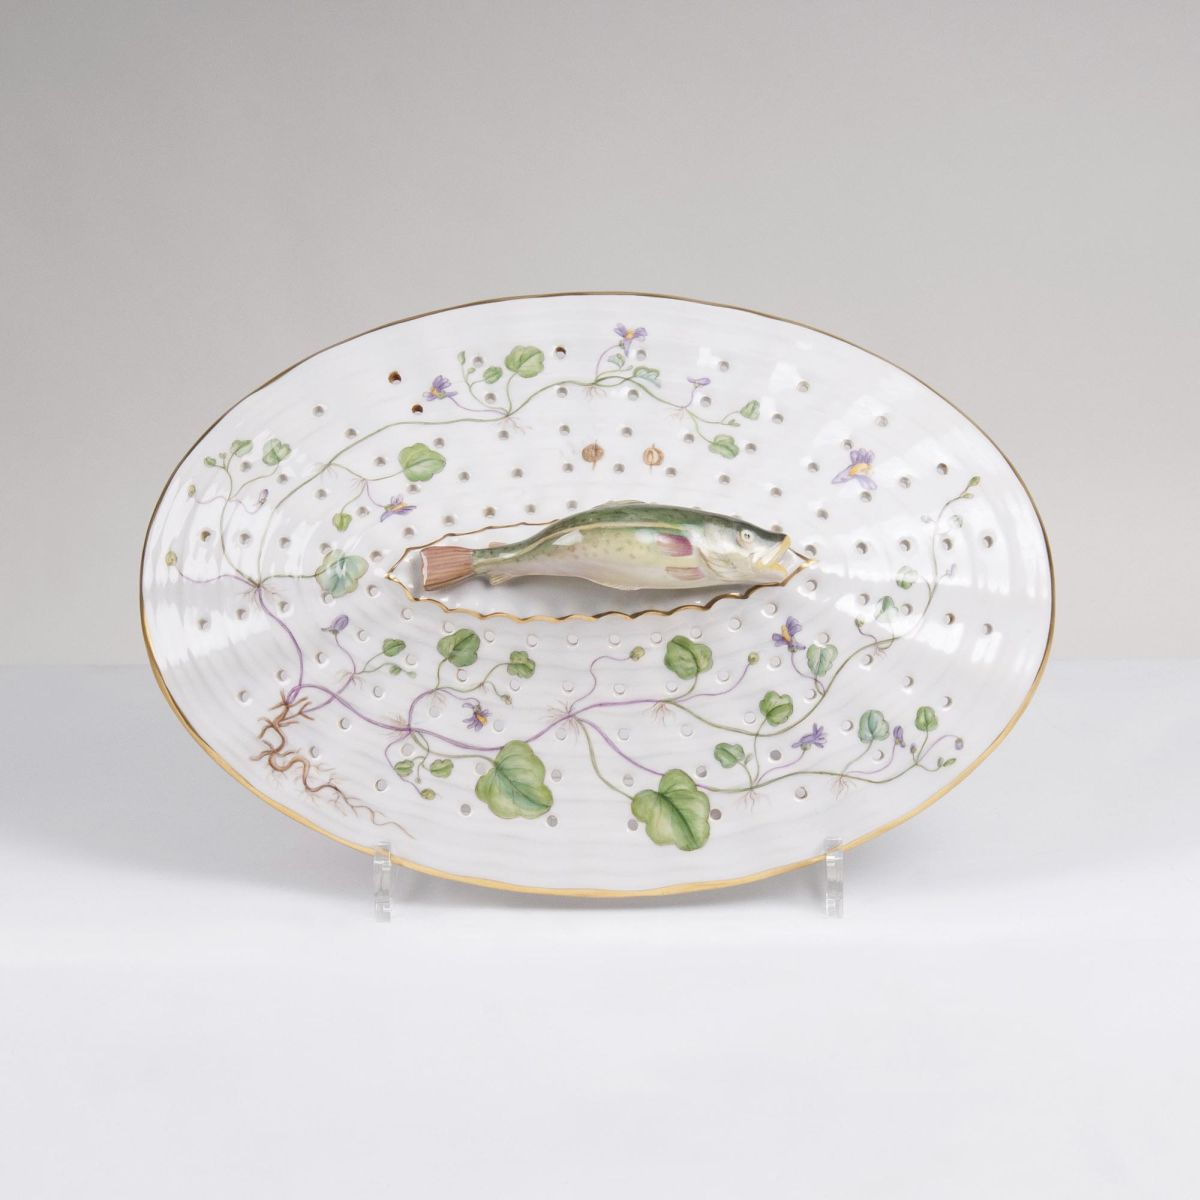 A reticulated Flora Danica Lid/Colander with Trout Handle